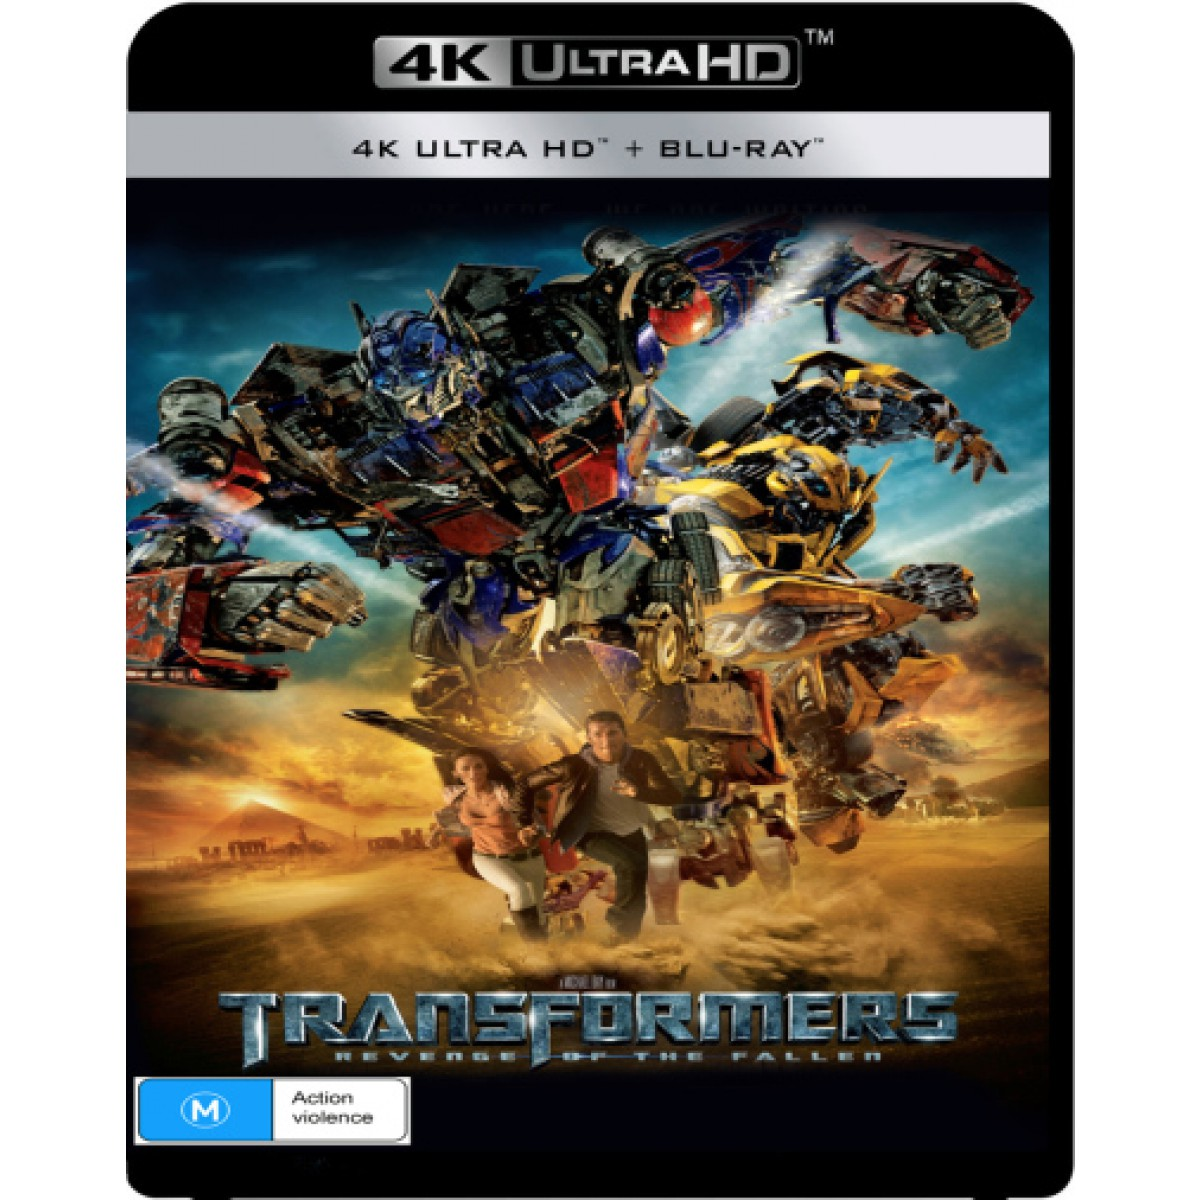 Transformers All 4 Live-Action Films Coming To 4K Blu-Ray